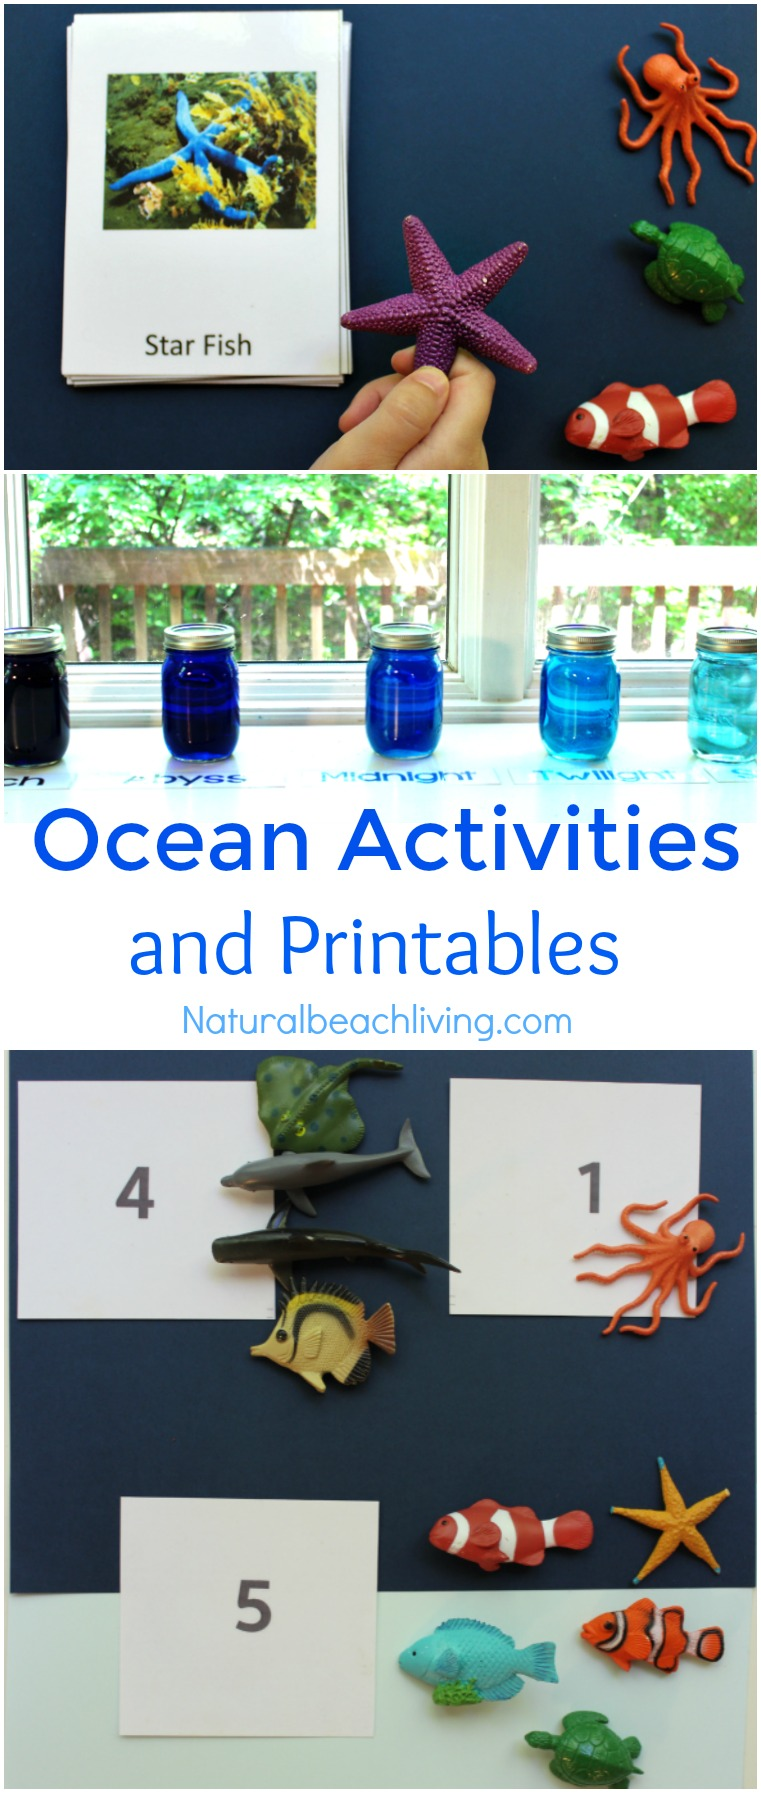 Montessori June Preschool Themes, Activities and Printables, Ocean, Under the Sea, Zoo Themes, Strawberries, Summer, Sea Shells, Science and so much more.